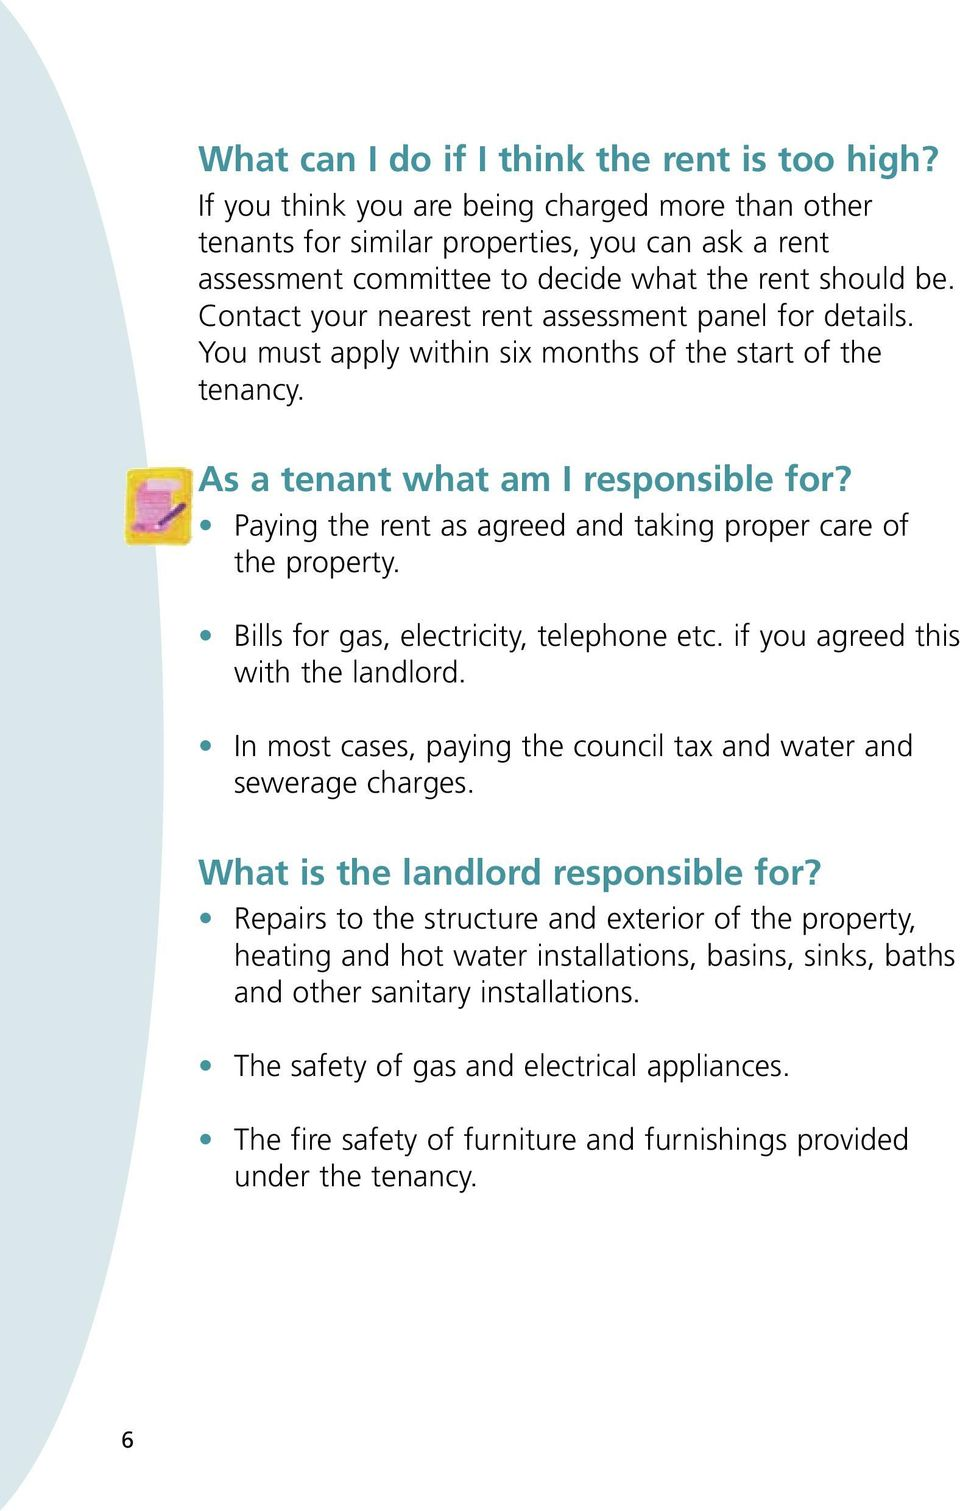 Contact your nearest rent assessment panel for details. You must apply within six months of the start of the tenancy. As a tenant what am I responsible for?